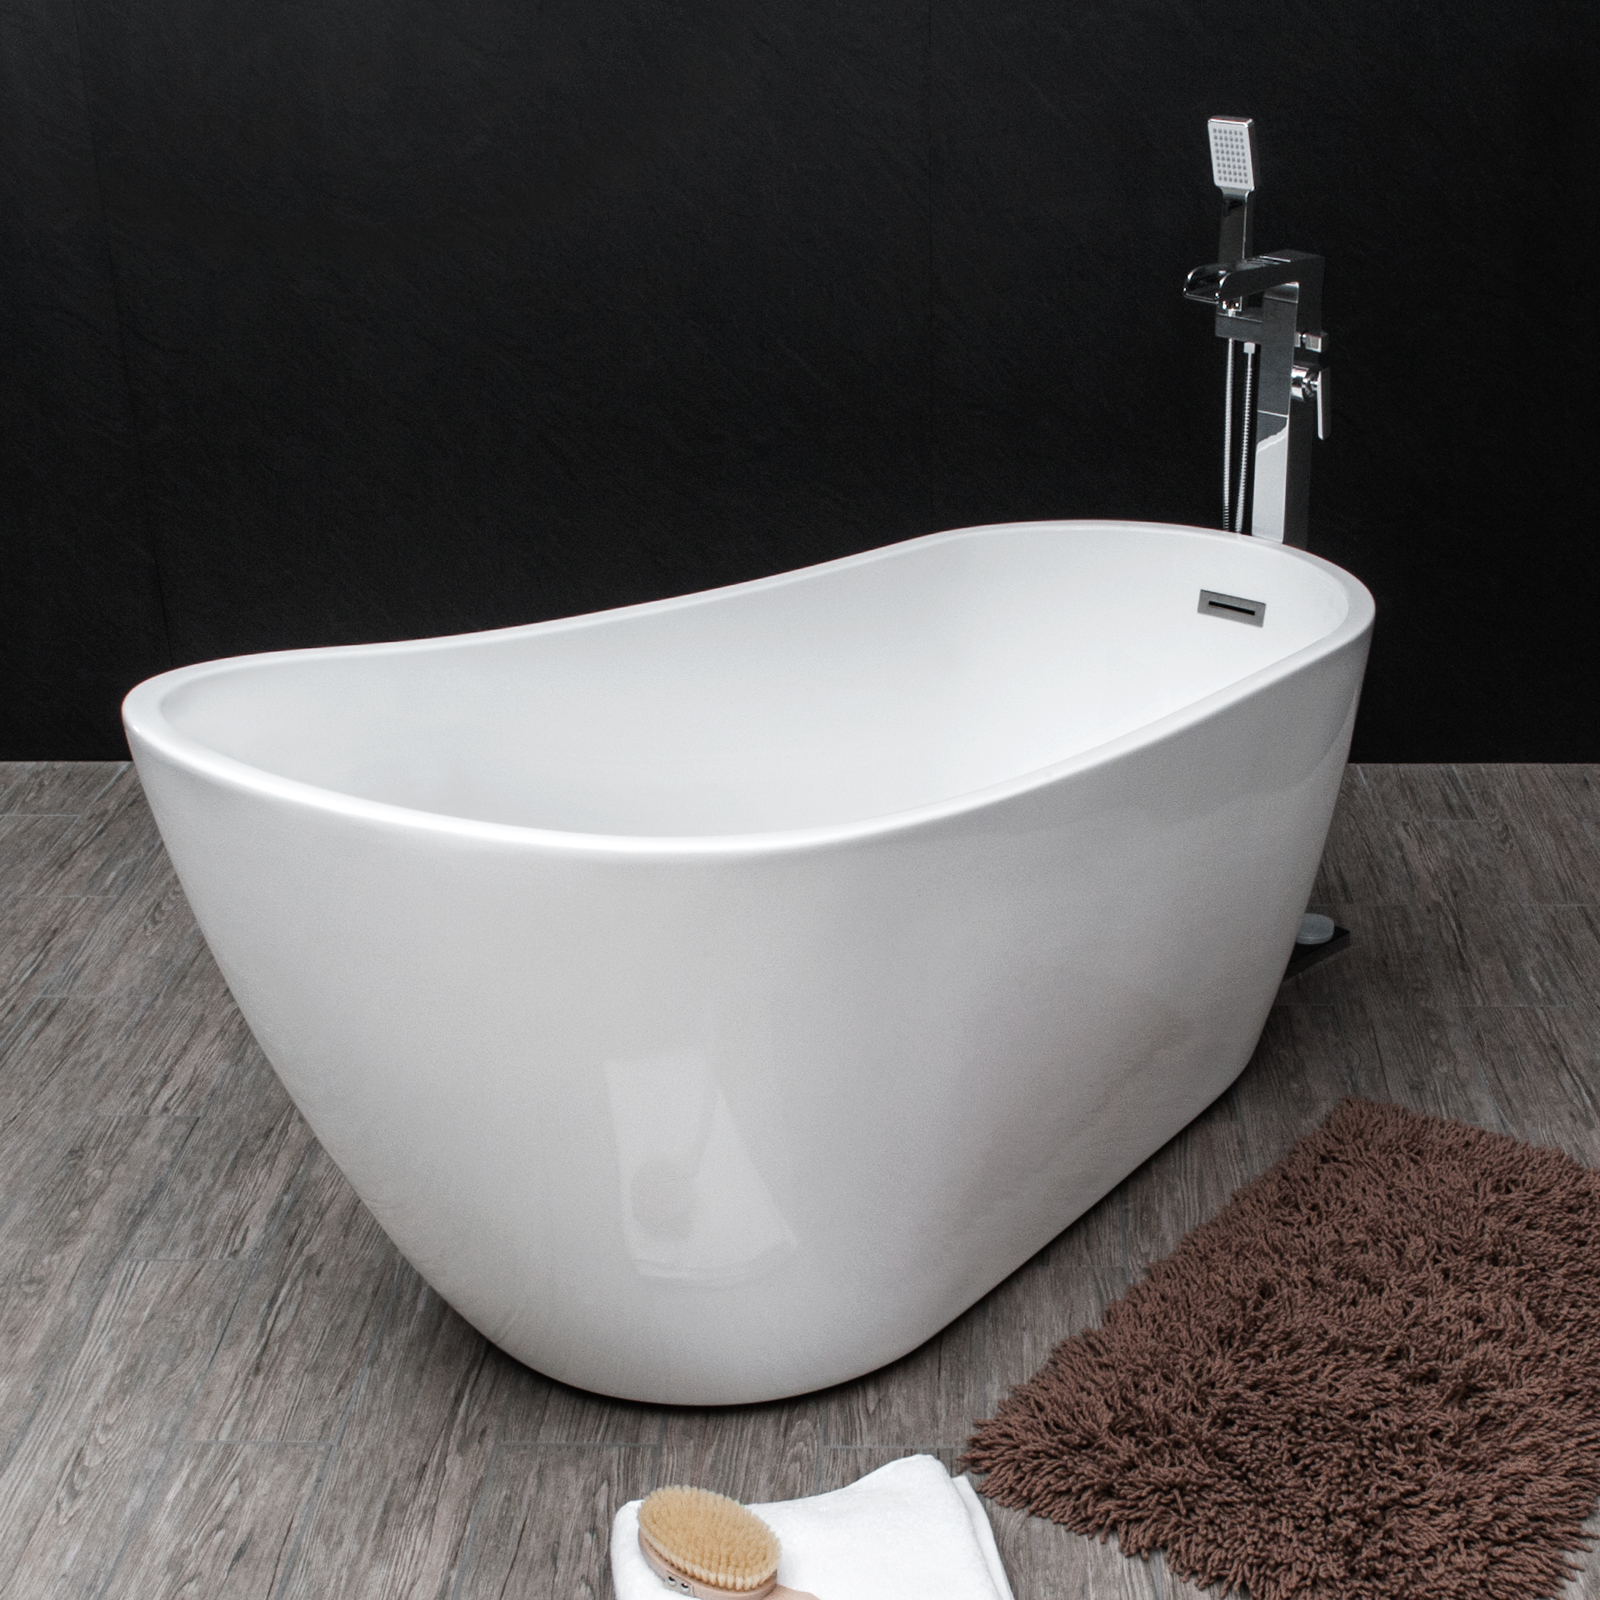 Savisto Modern Bathroom Luxury Milano Contemporary Freestanding Slipper Bath Tub